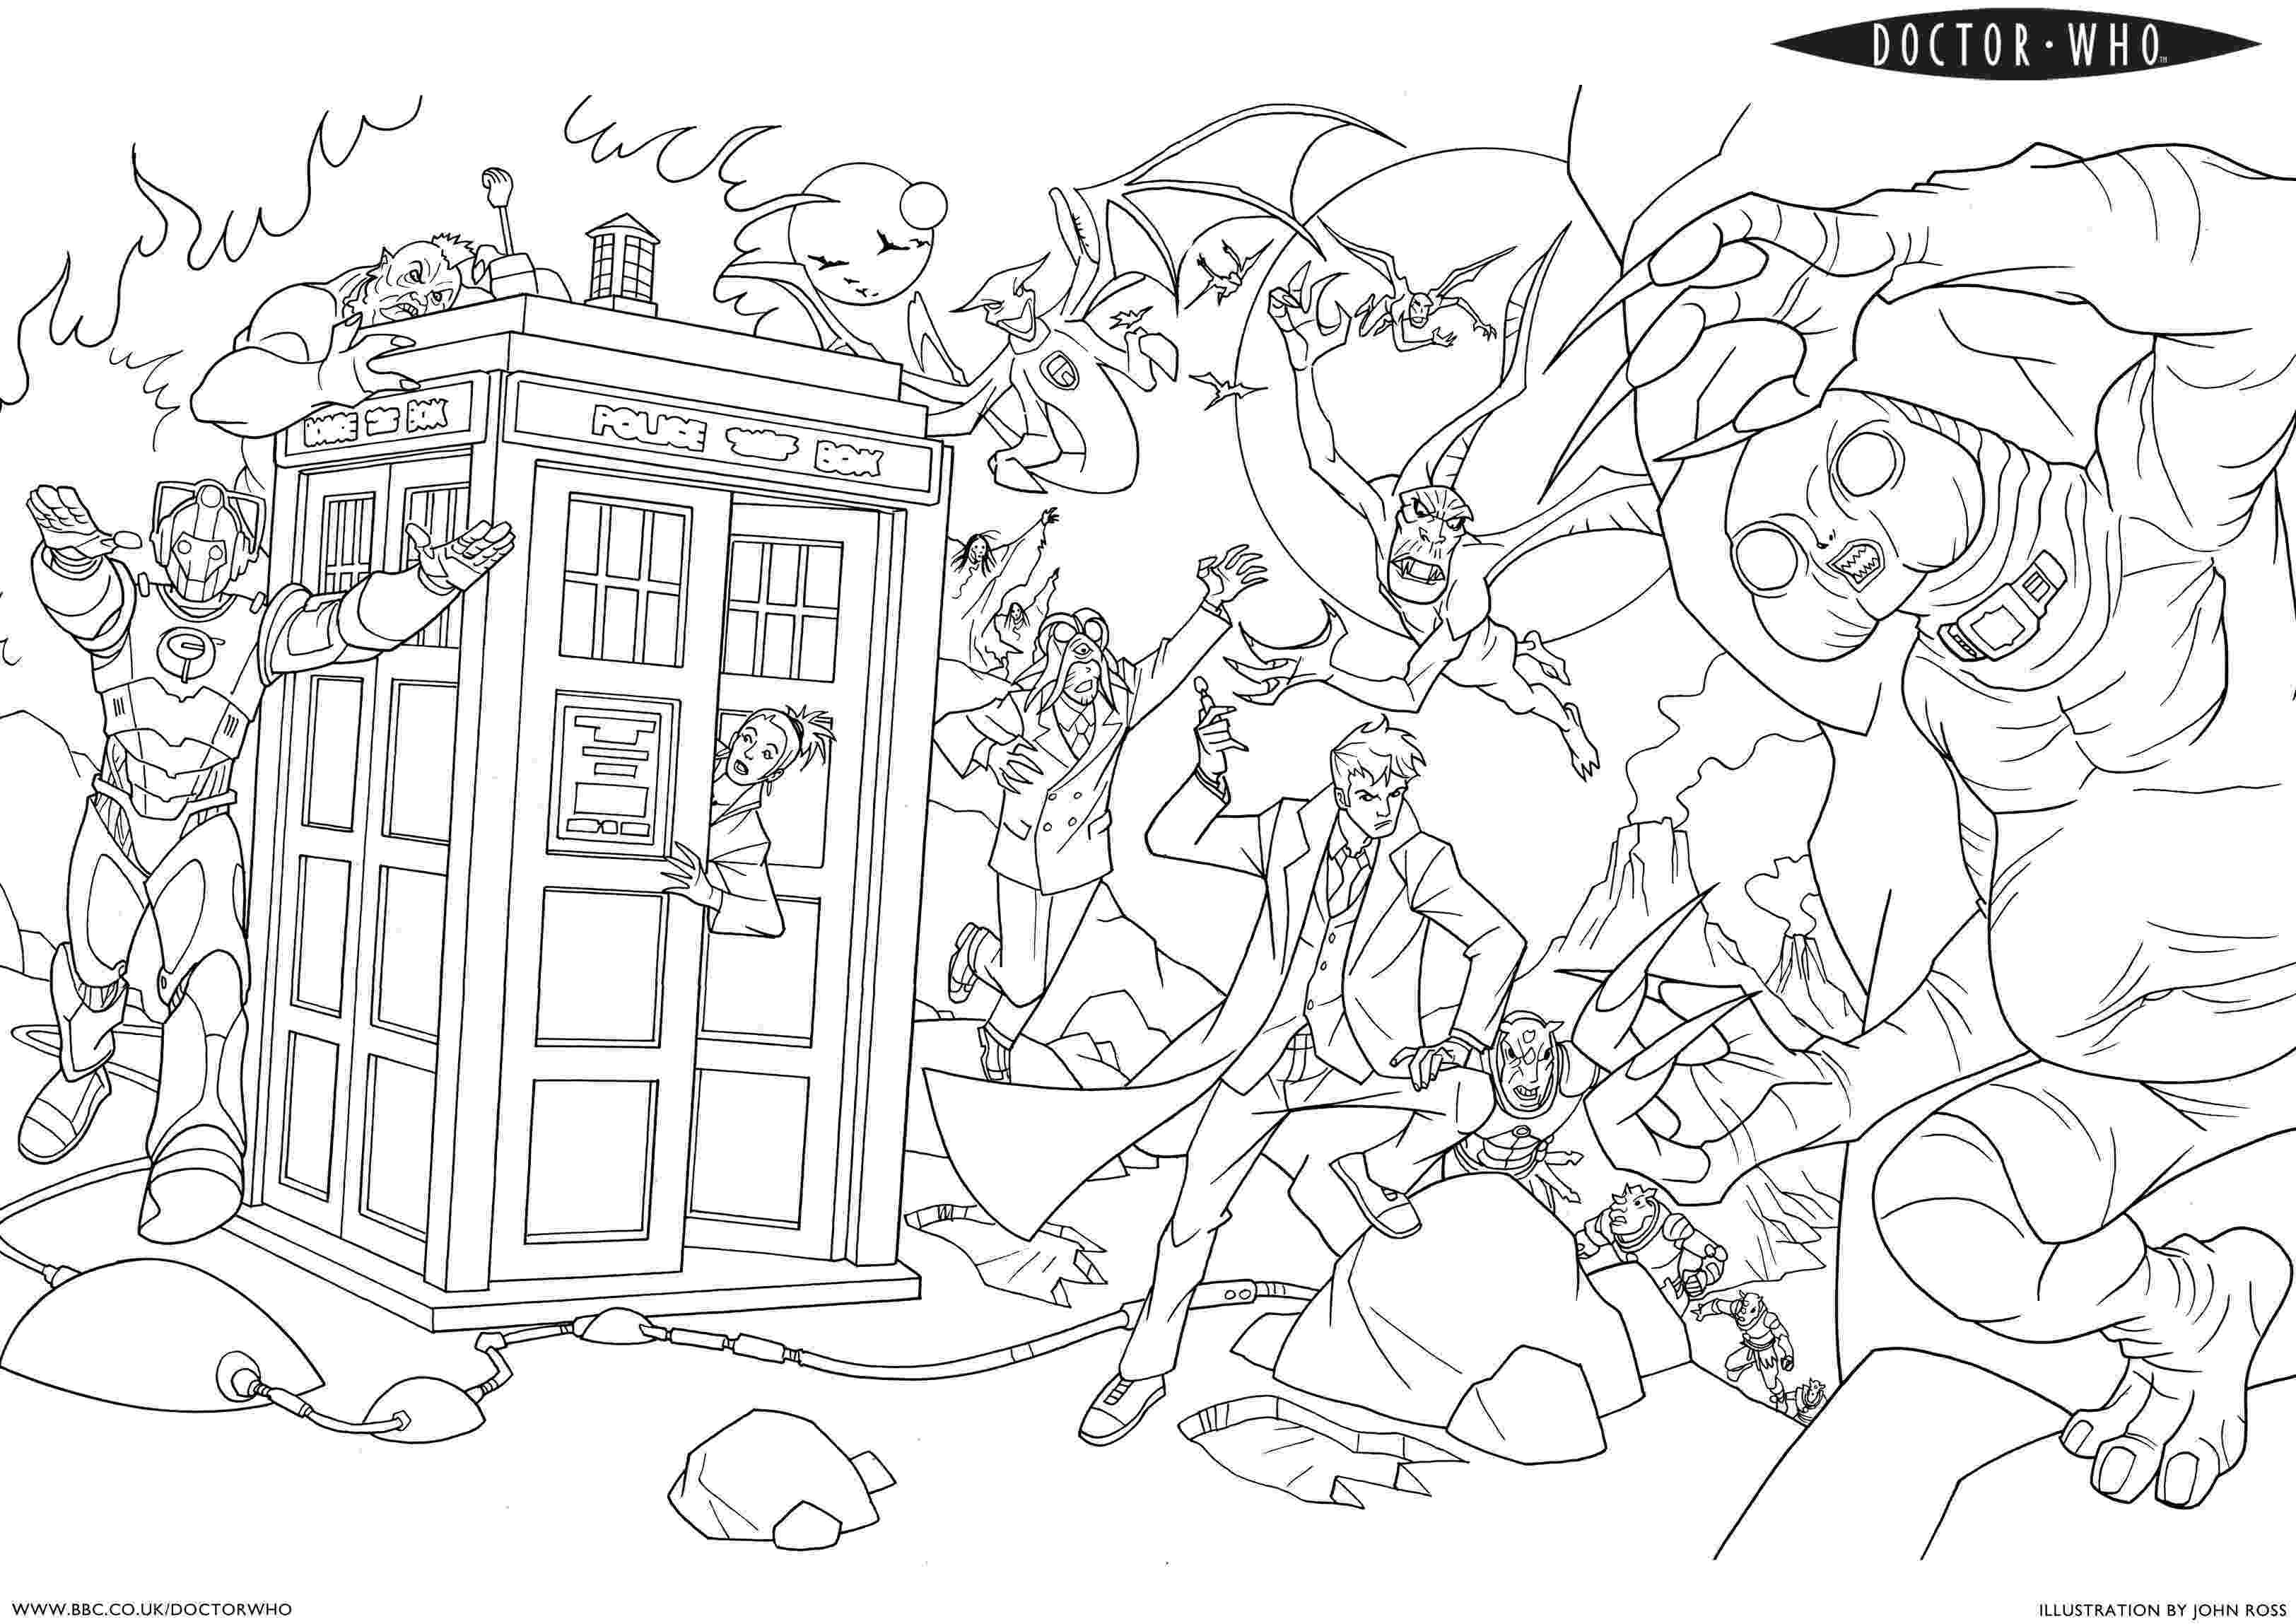 dr who pictures to colour 7 free doctor who fan art coloring books plus bonus to colour pictures who dr